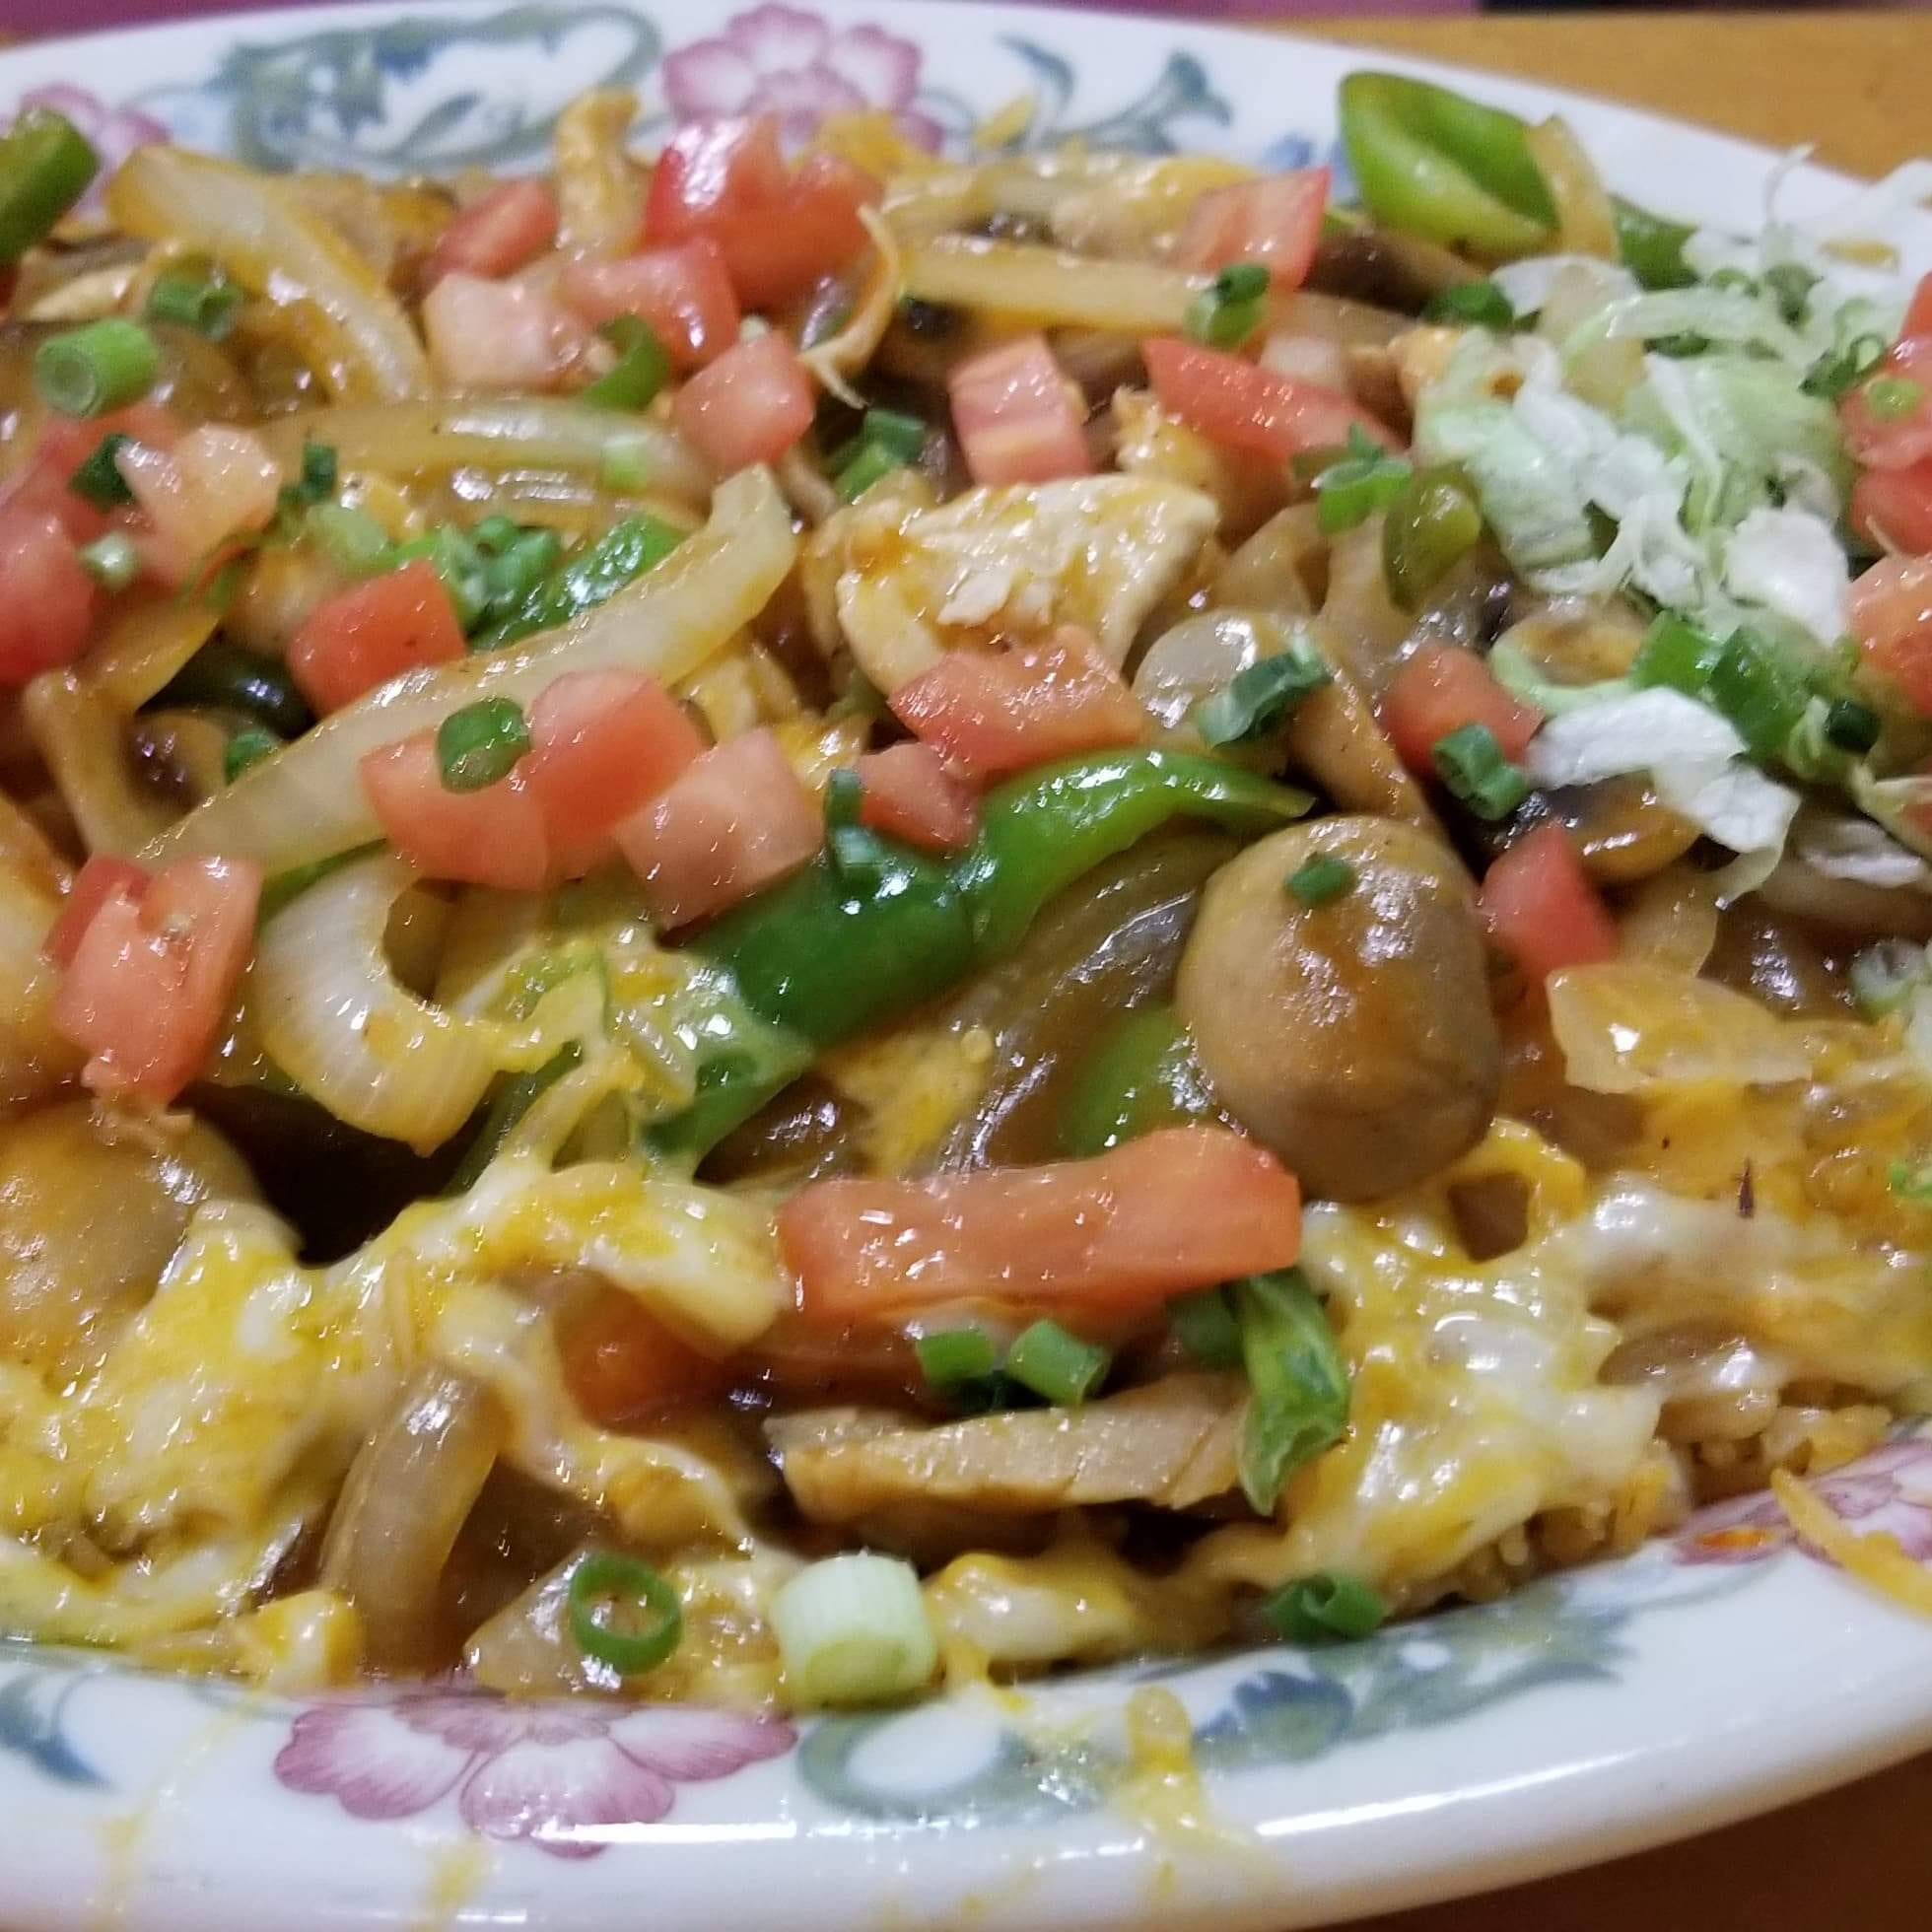 Newly opened Casa Amaya offers flavorful dishes, daily specials